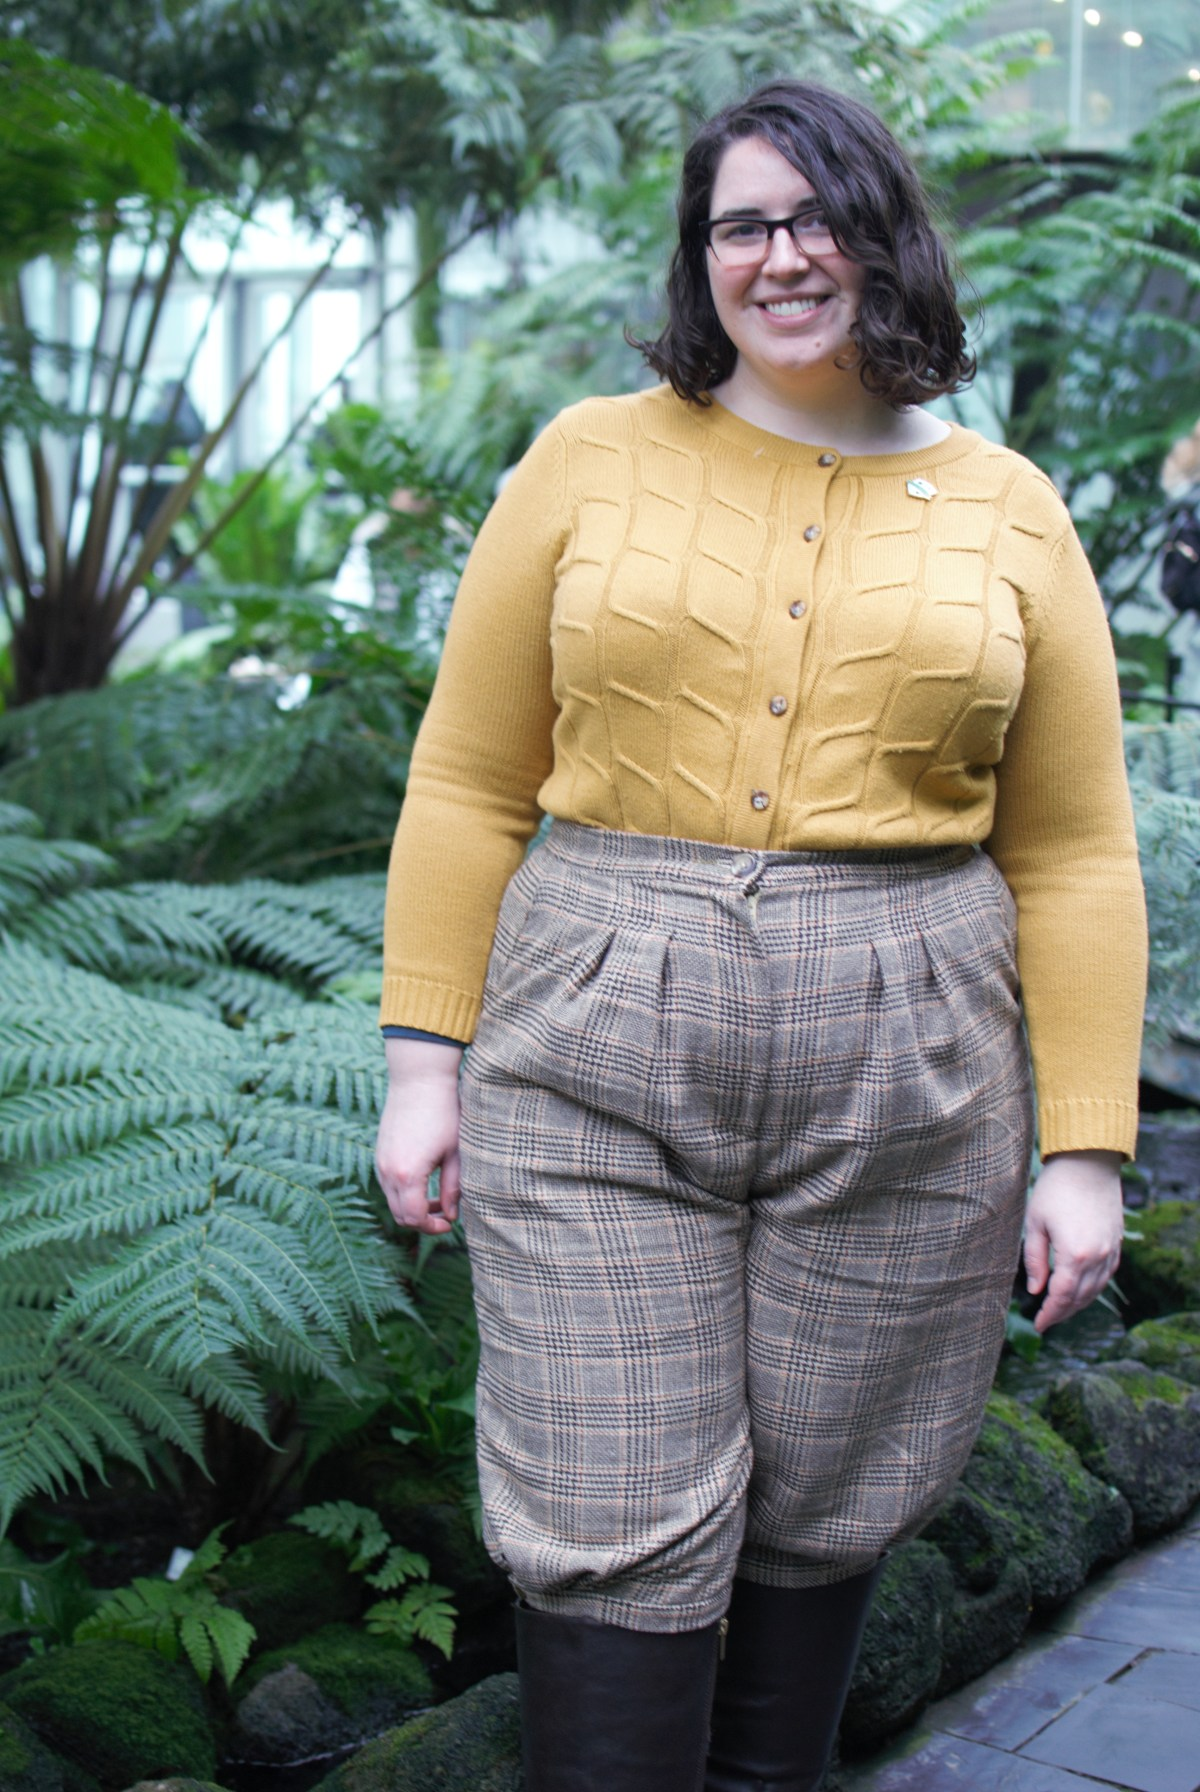 Shannon poses in front of a garden, wearing the plaid knickerbockers and a butter-yellow cardigan. The shot shows details of the pleating on the front of the knickerbockers.